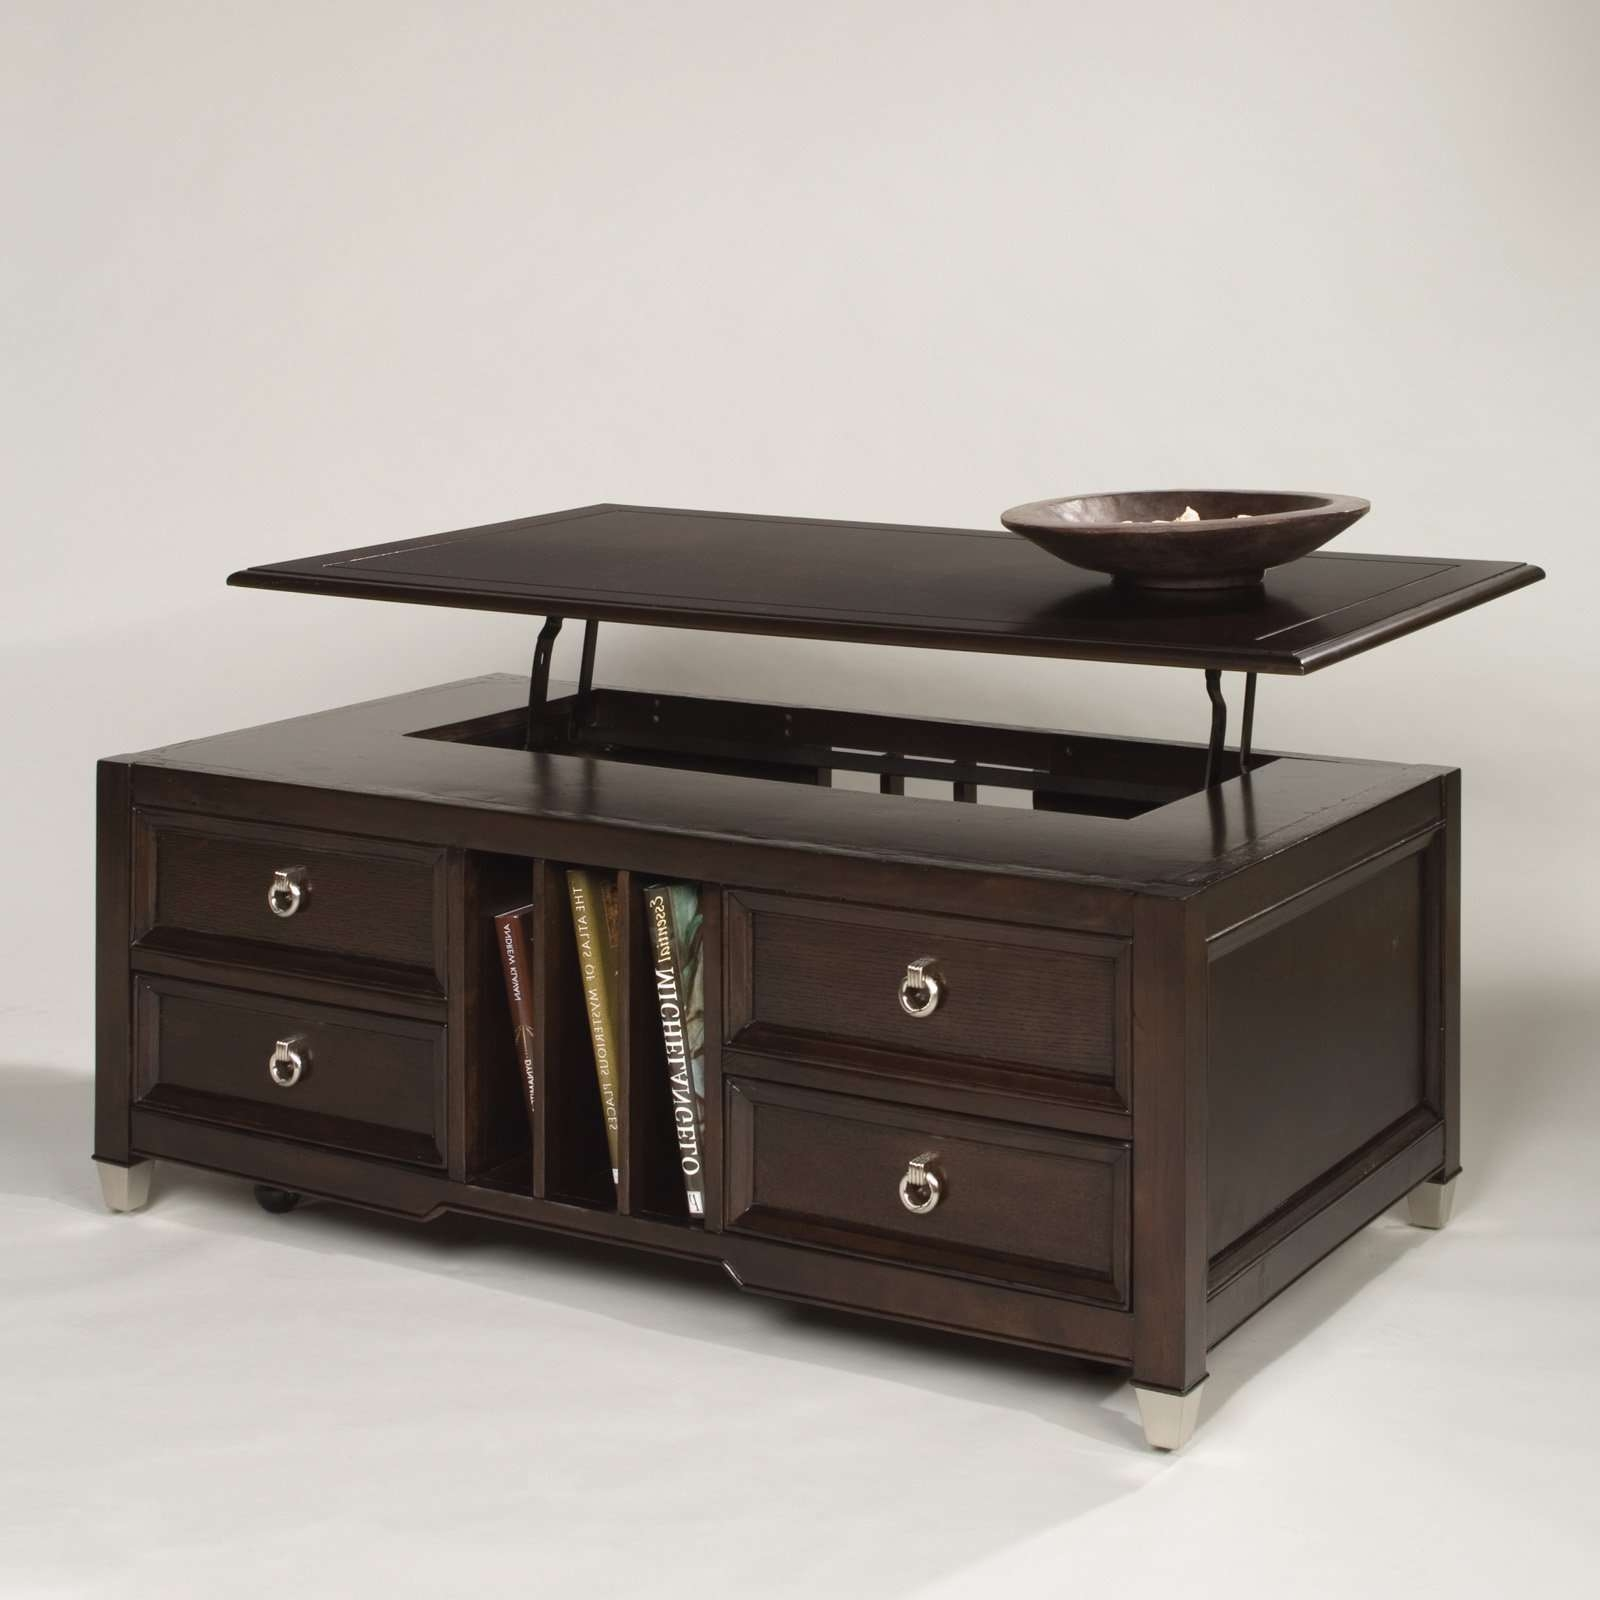 Square Leather Ottoman Coffee Table With Storage With Modern Flip Inside Most Current Square Coffee Table With Storage Drawers (View 14 of 20)